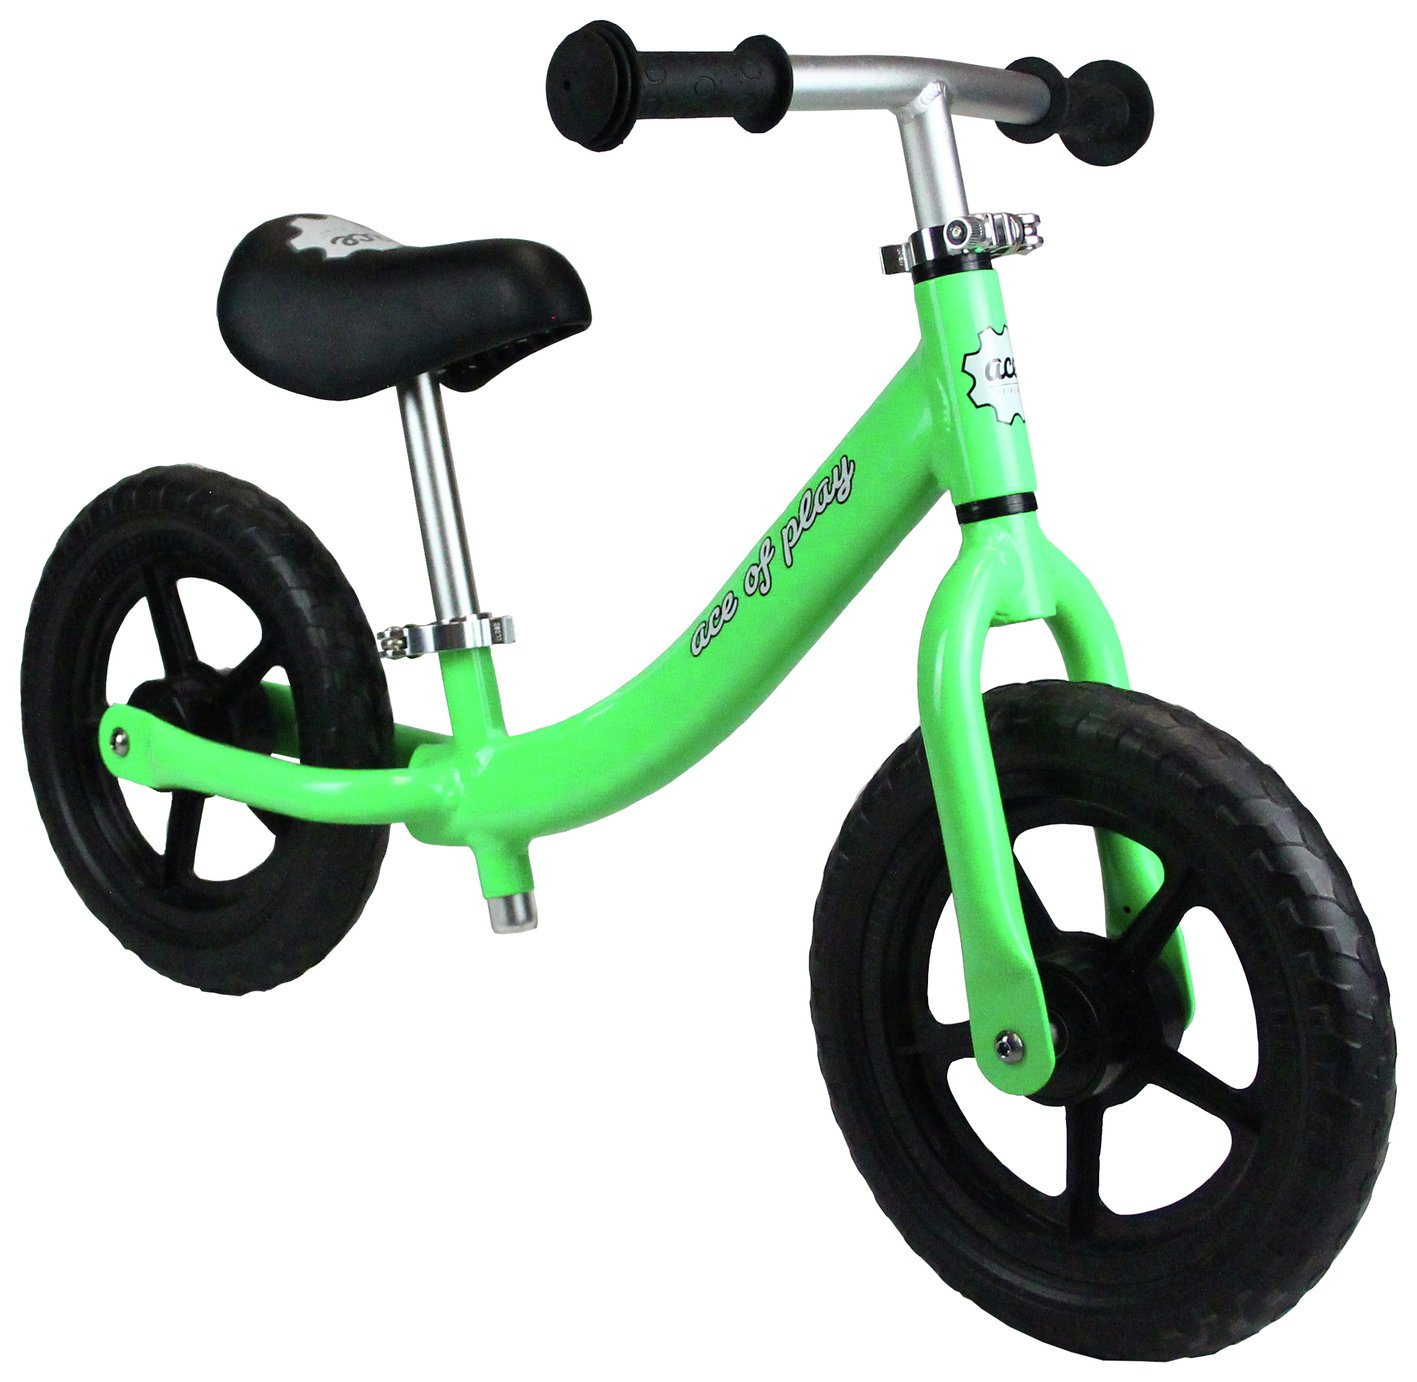 Image of Ace of Play Balance Bike - Green.